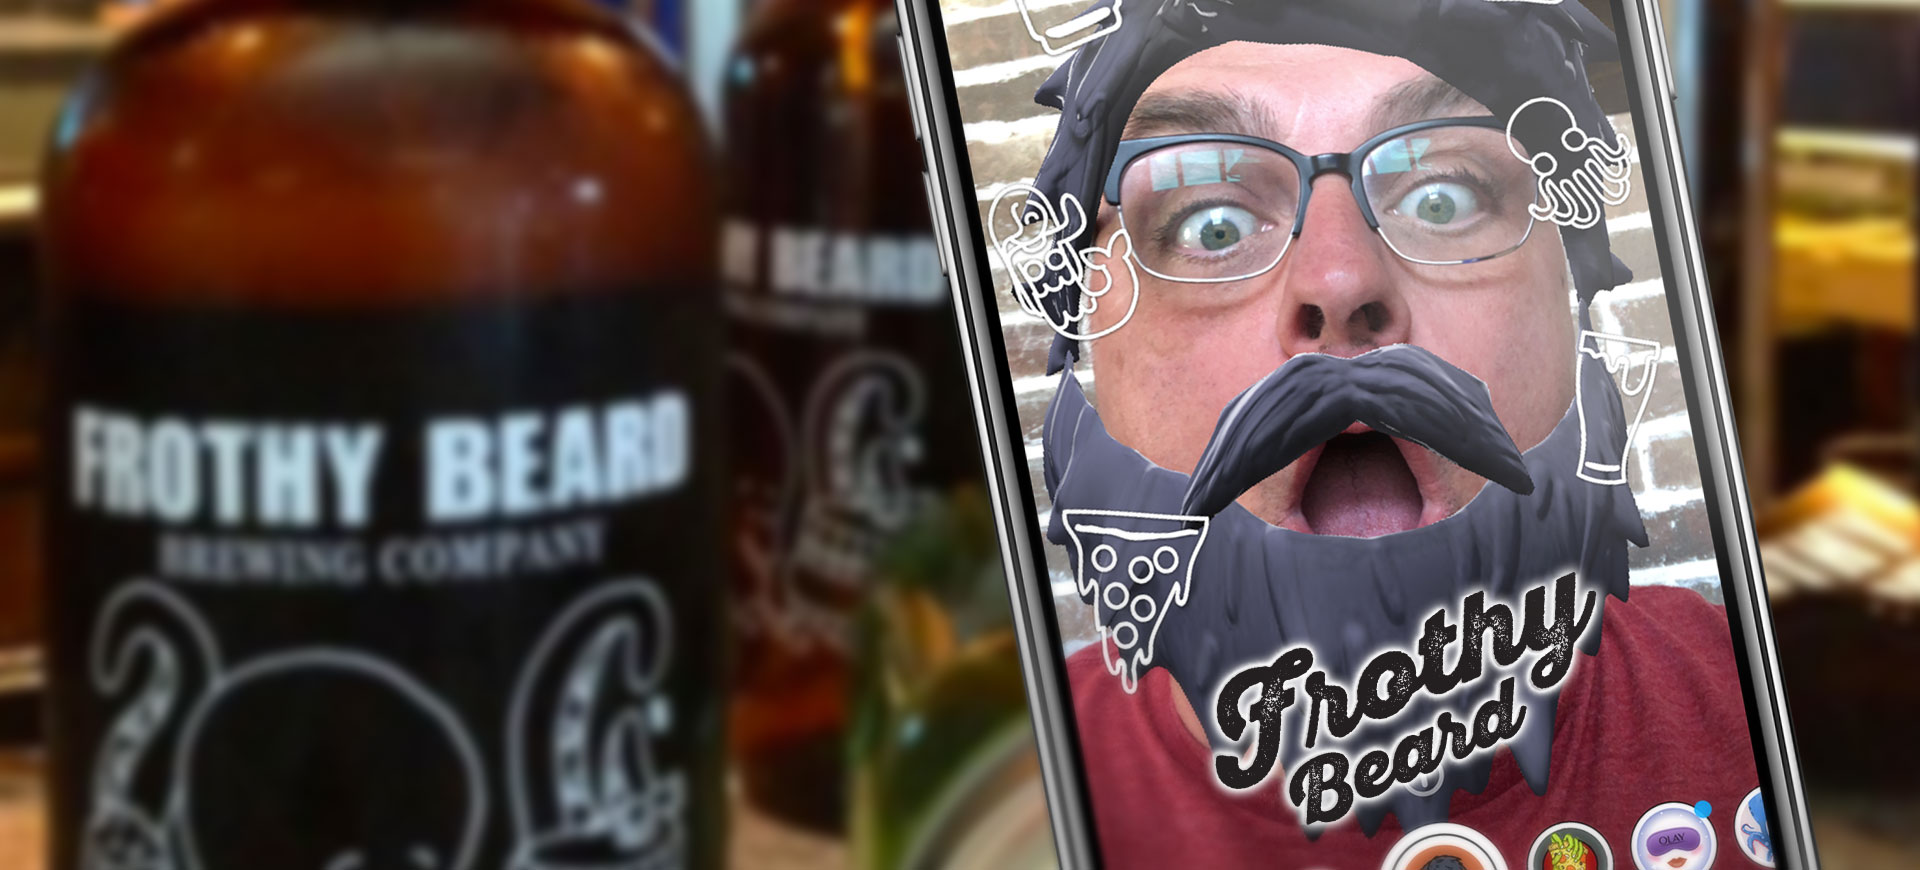 Frothy Beard AR Snapchat and Facebook Filter